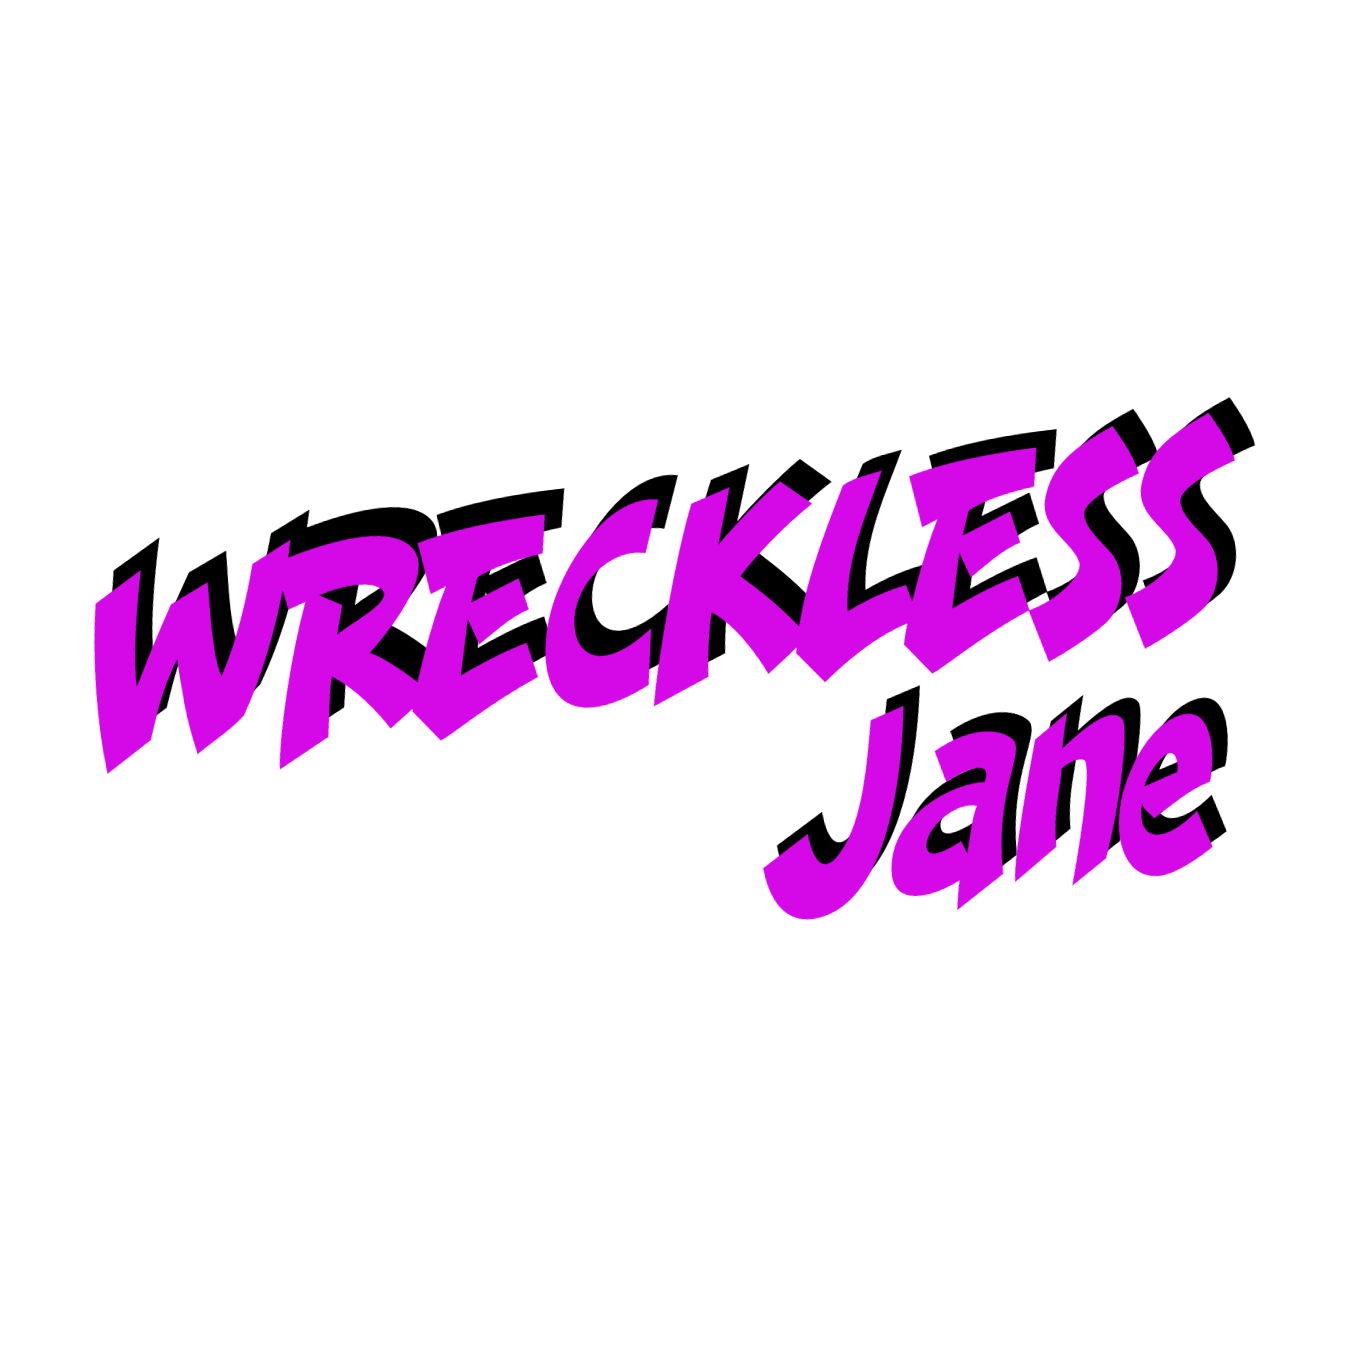 WRECKLESS Jane